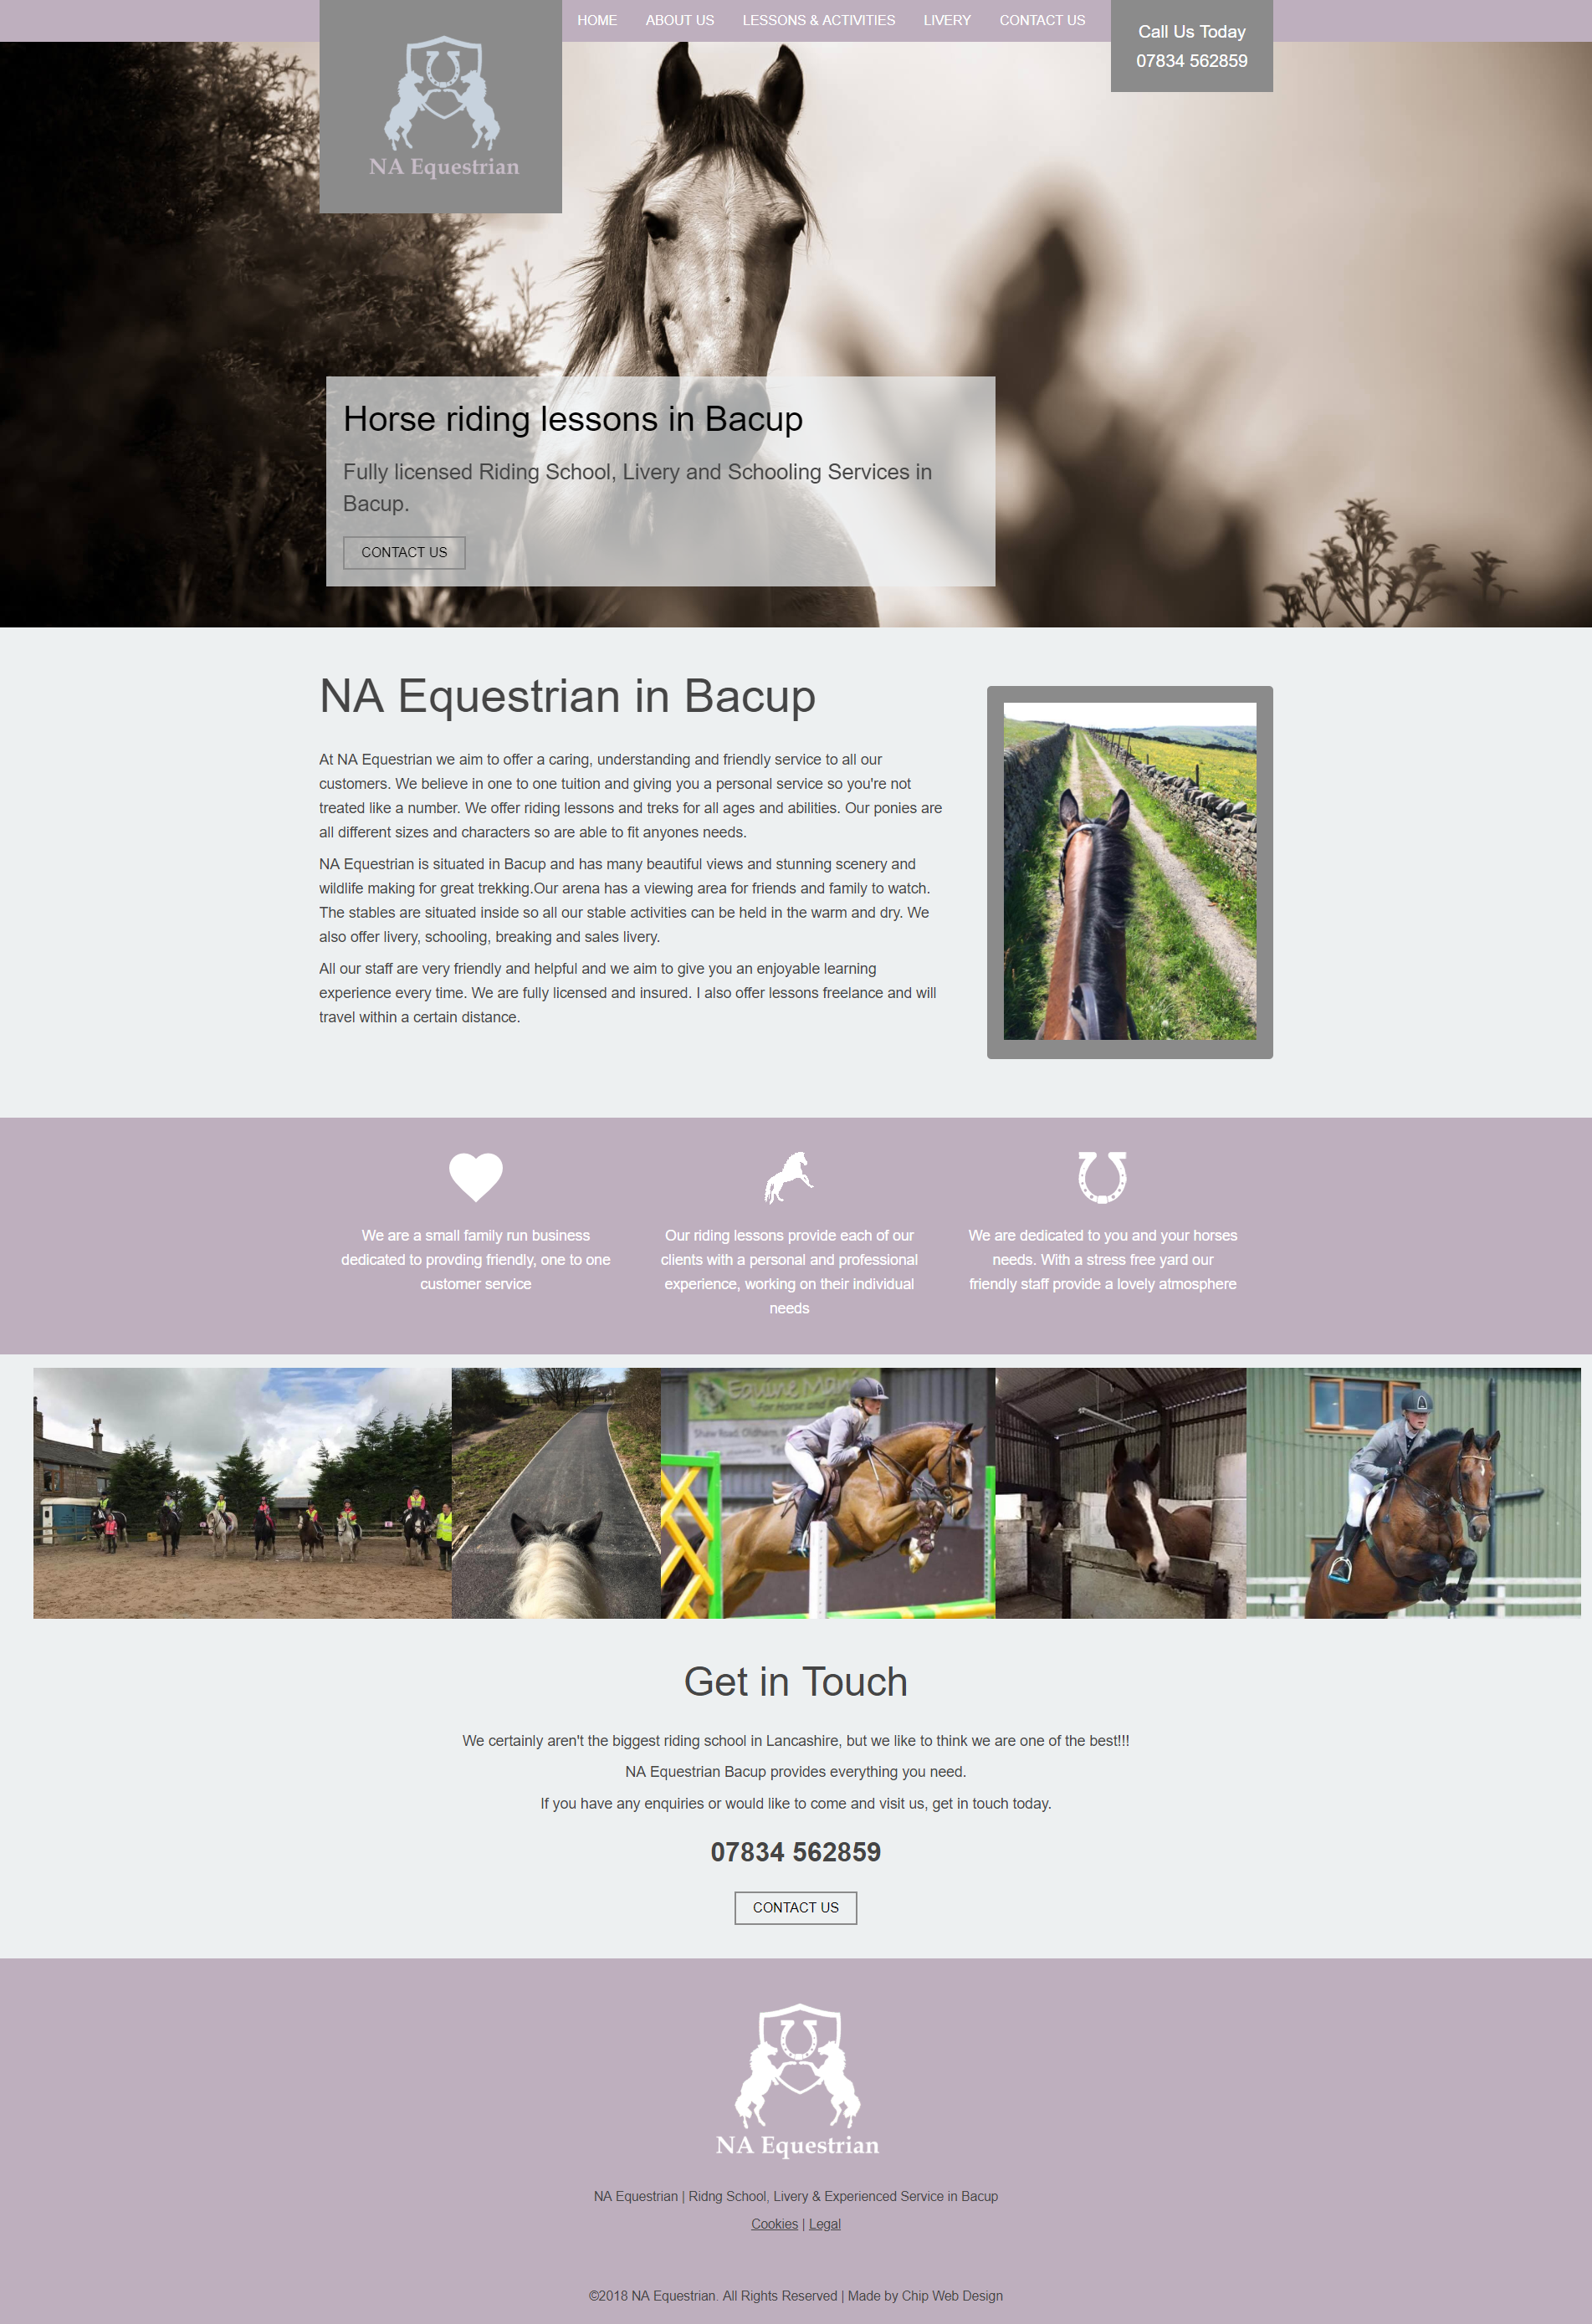 NA Equestrian website